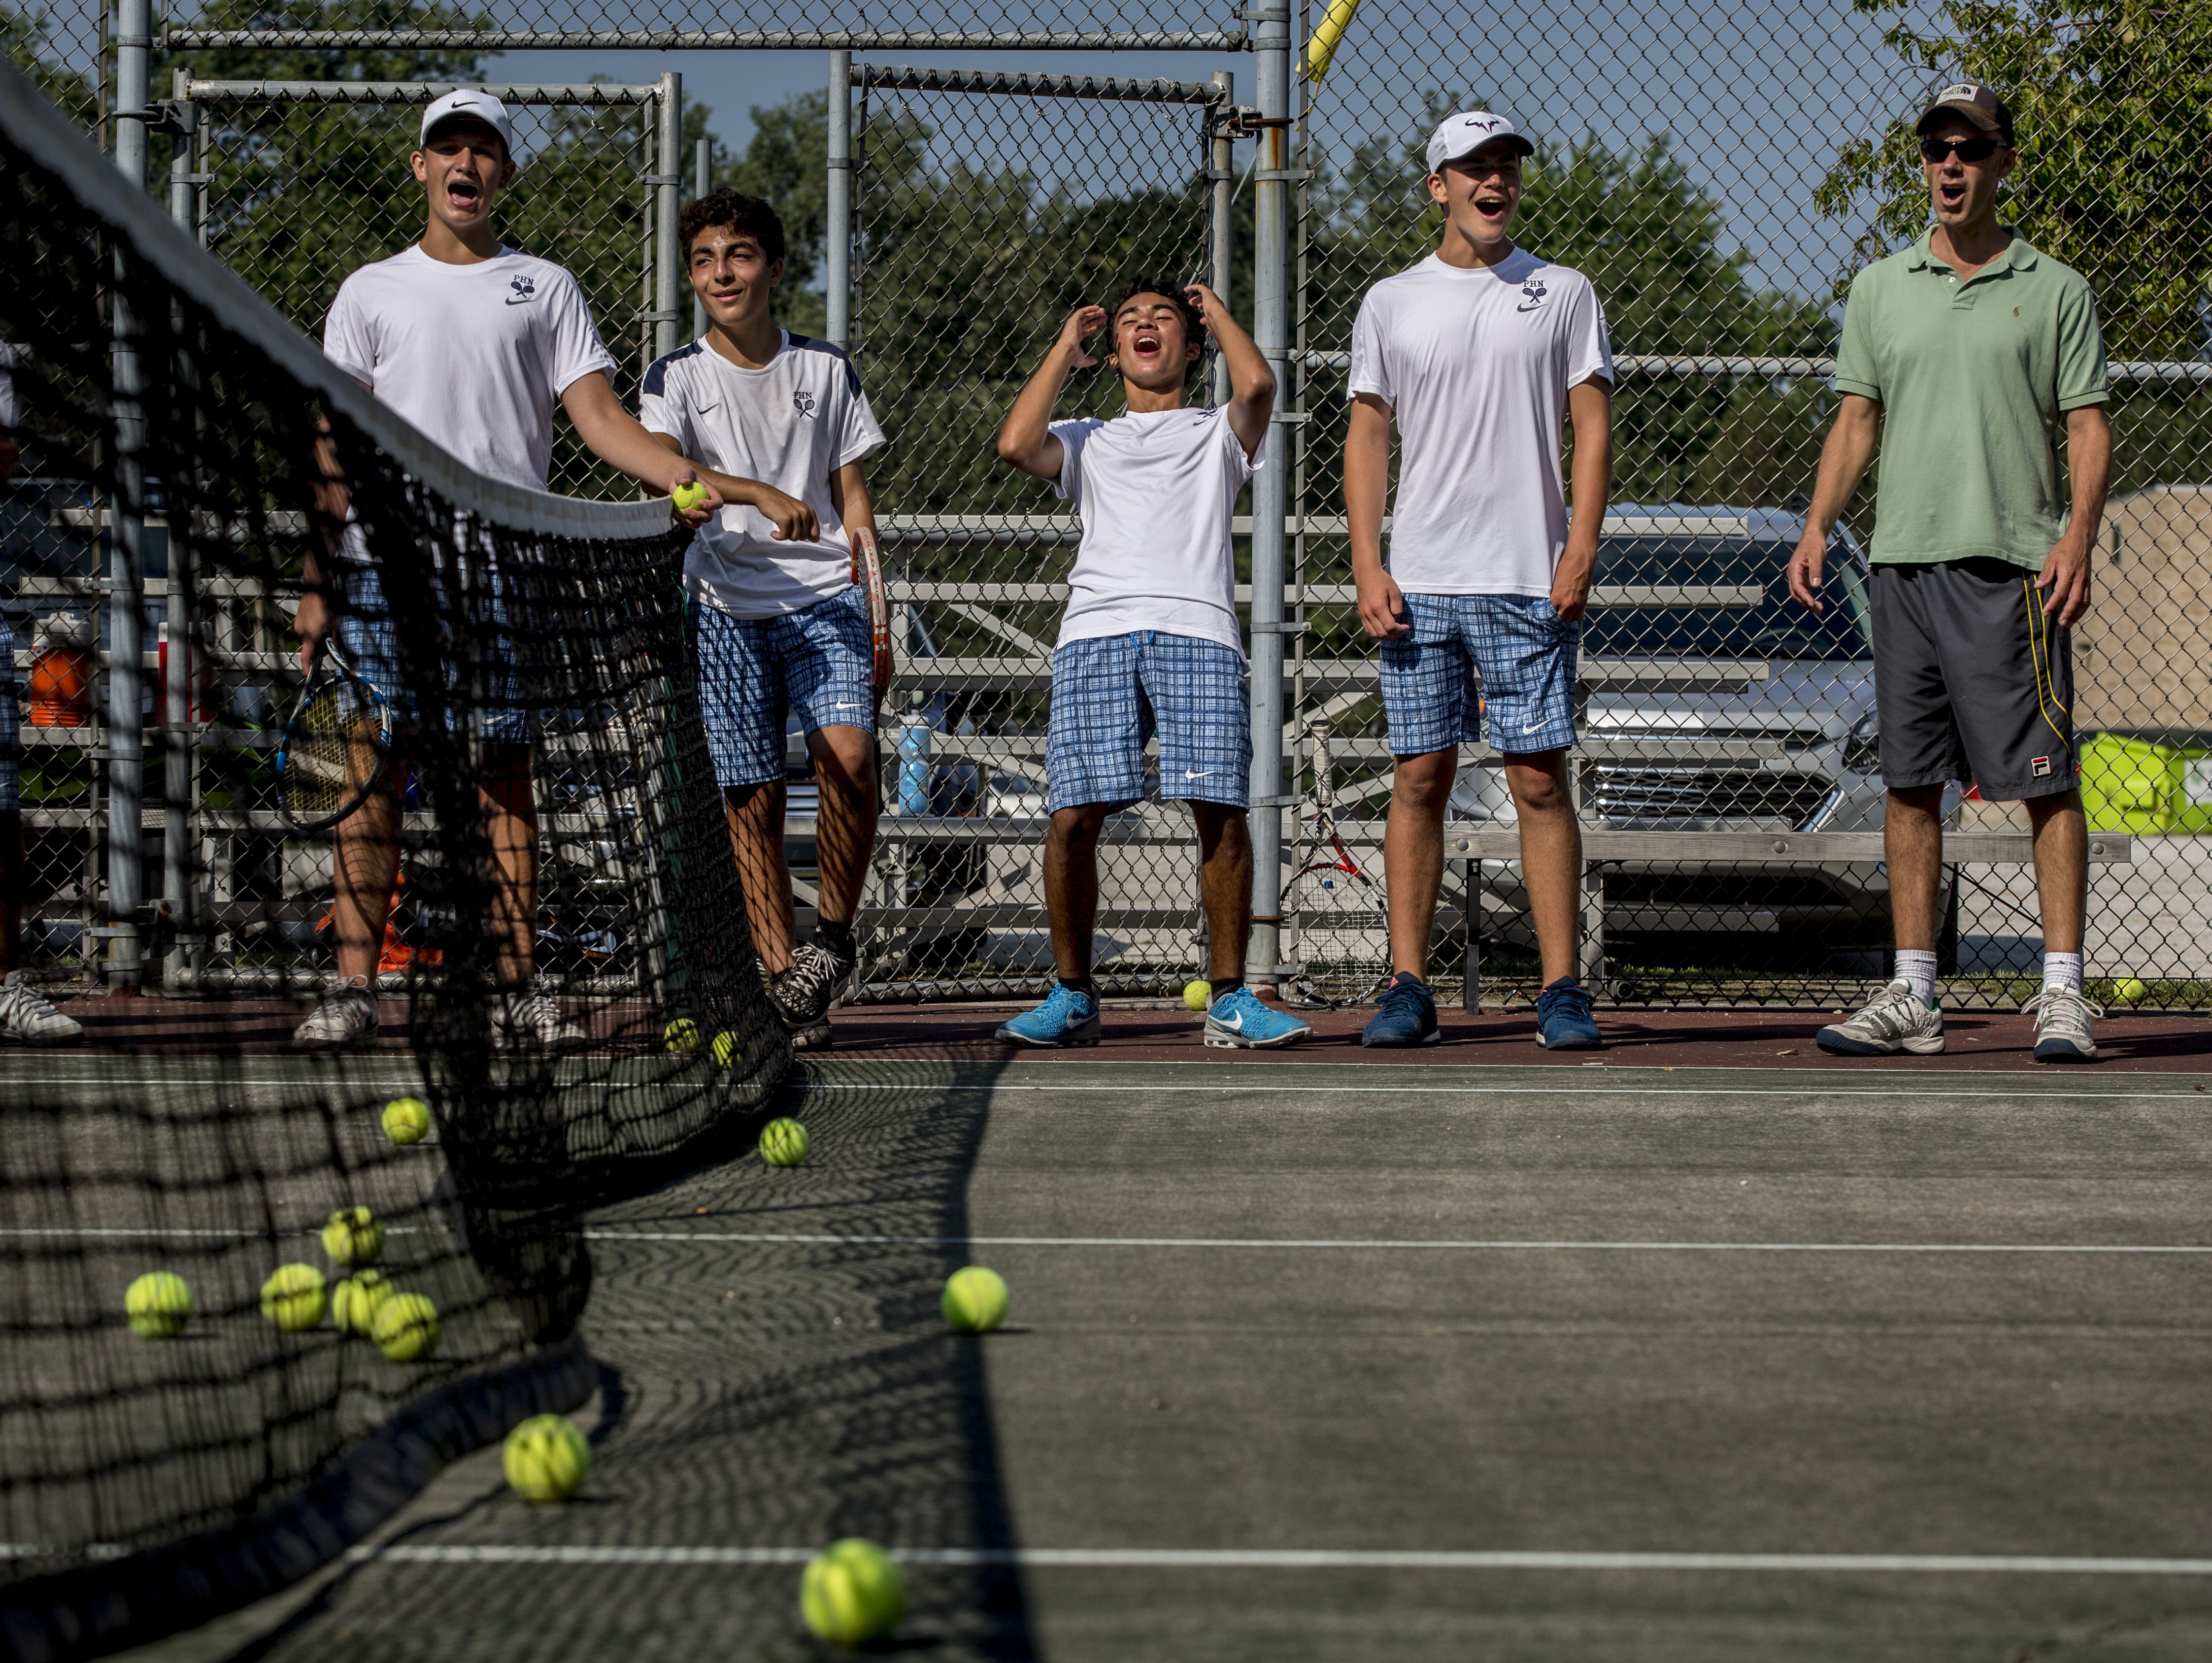 Port Huron Northern coach Chris Smith, right, reacts along with players as they watch a match during tennis practice Tuesday, August 30, 2016 at Port Huron Northern High School.